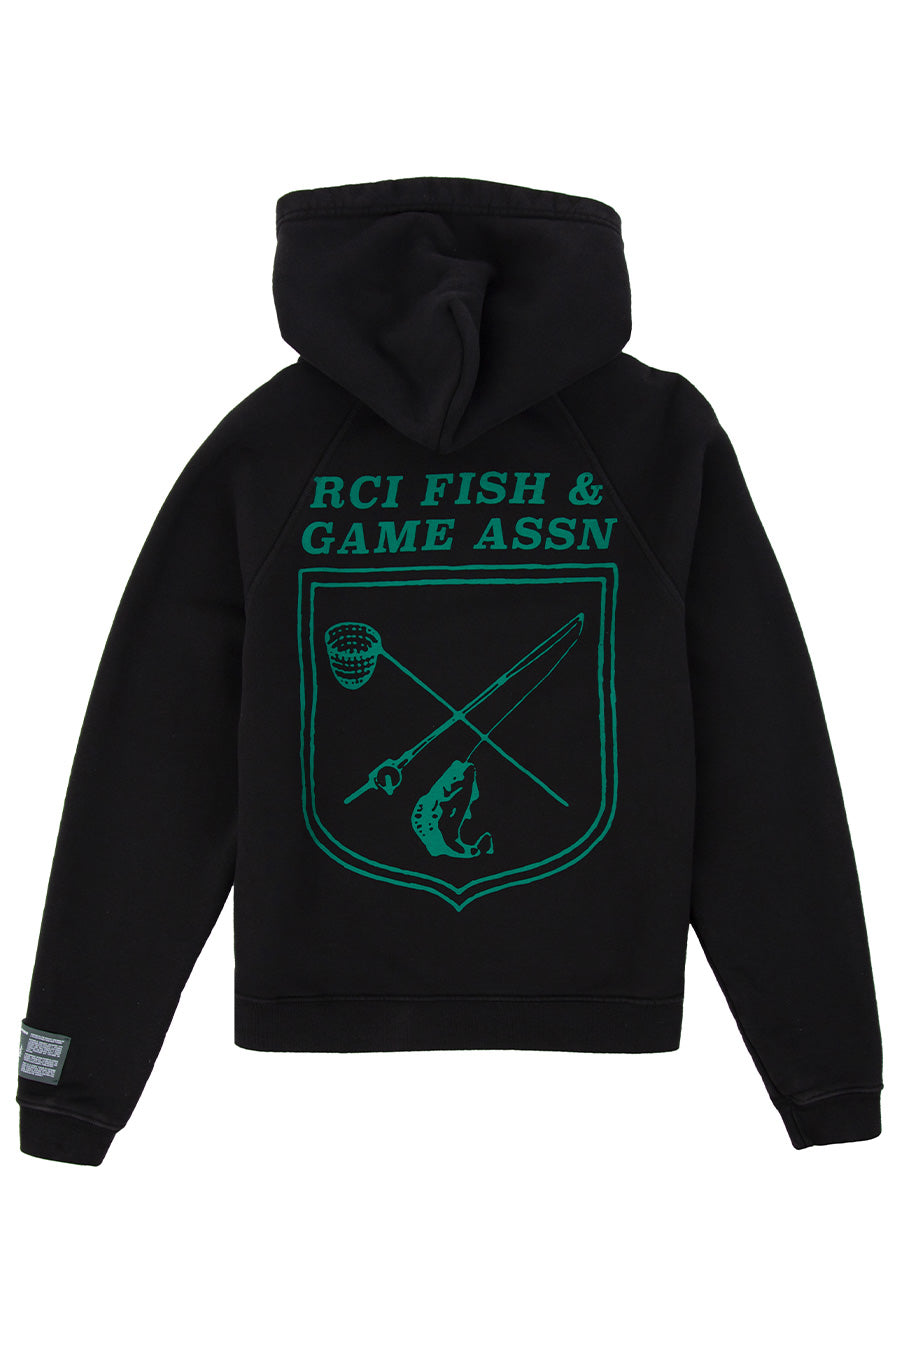 Reese Cooper - Black Piru Creek Hoodie | 1032 SPACE